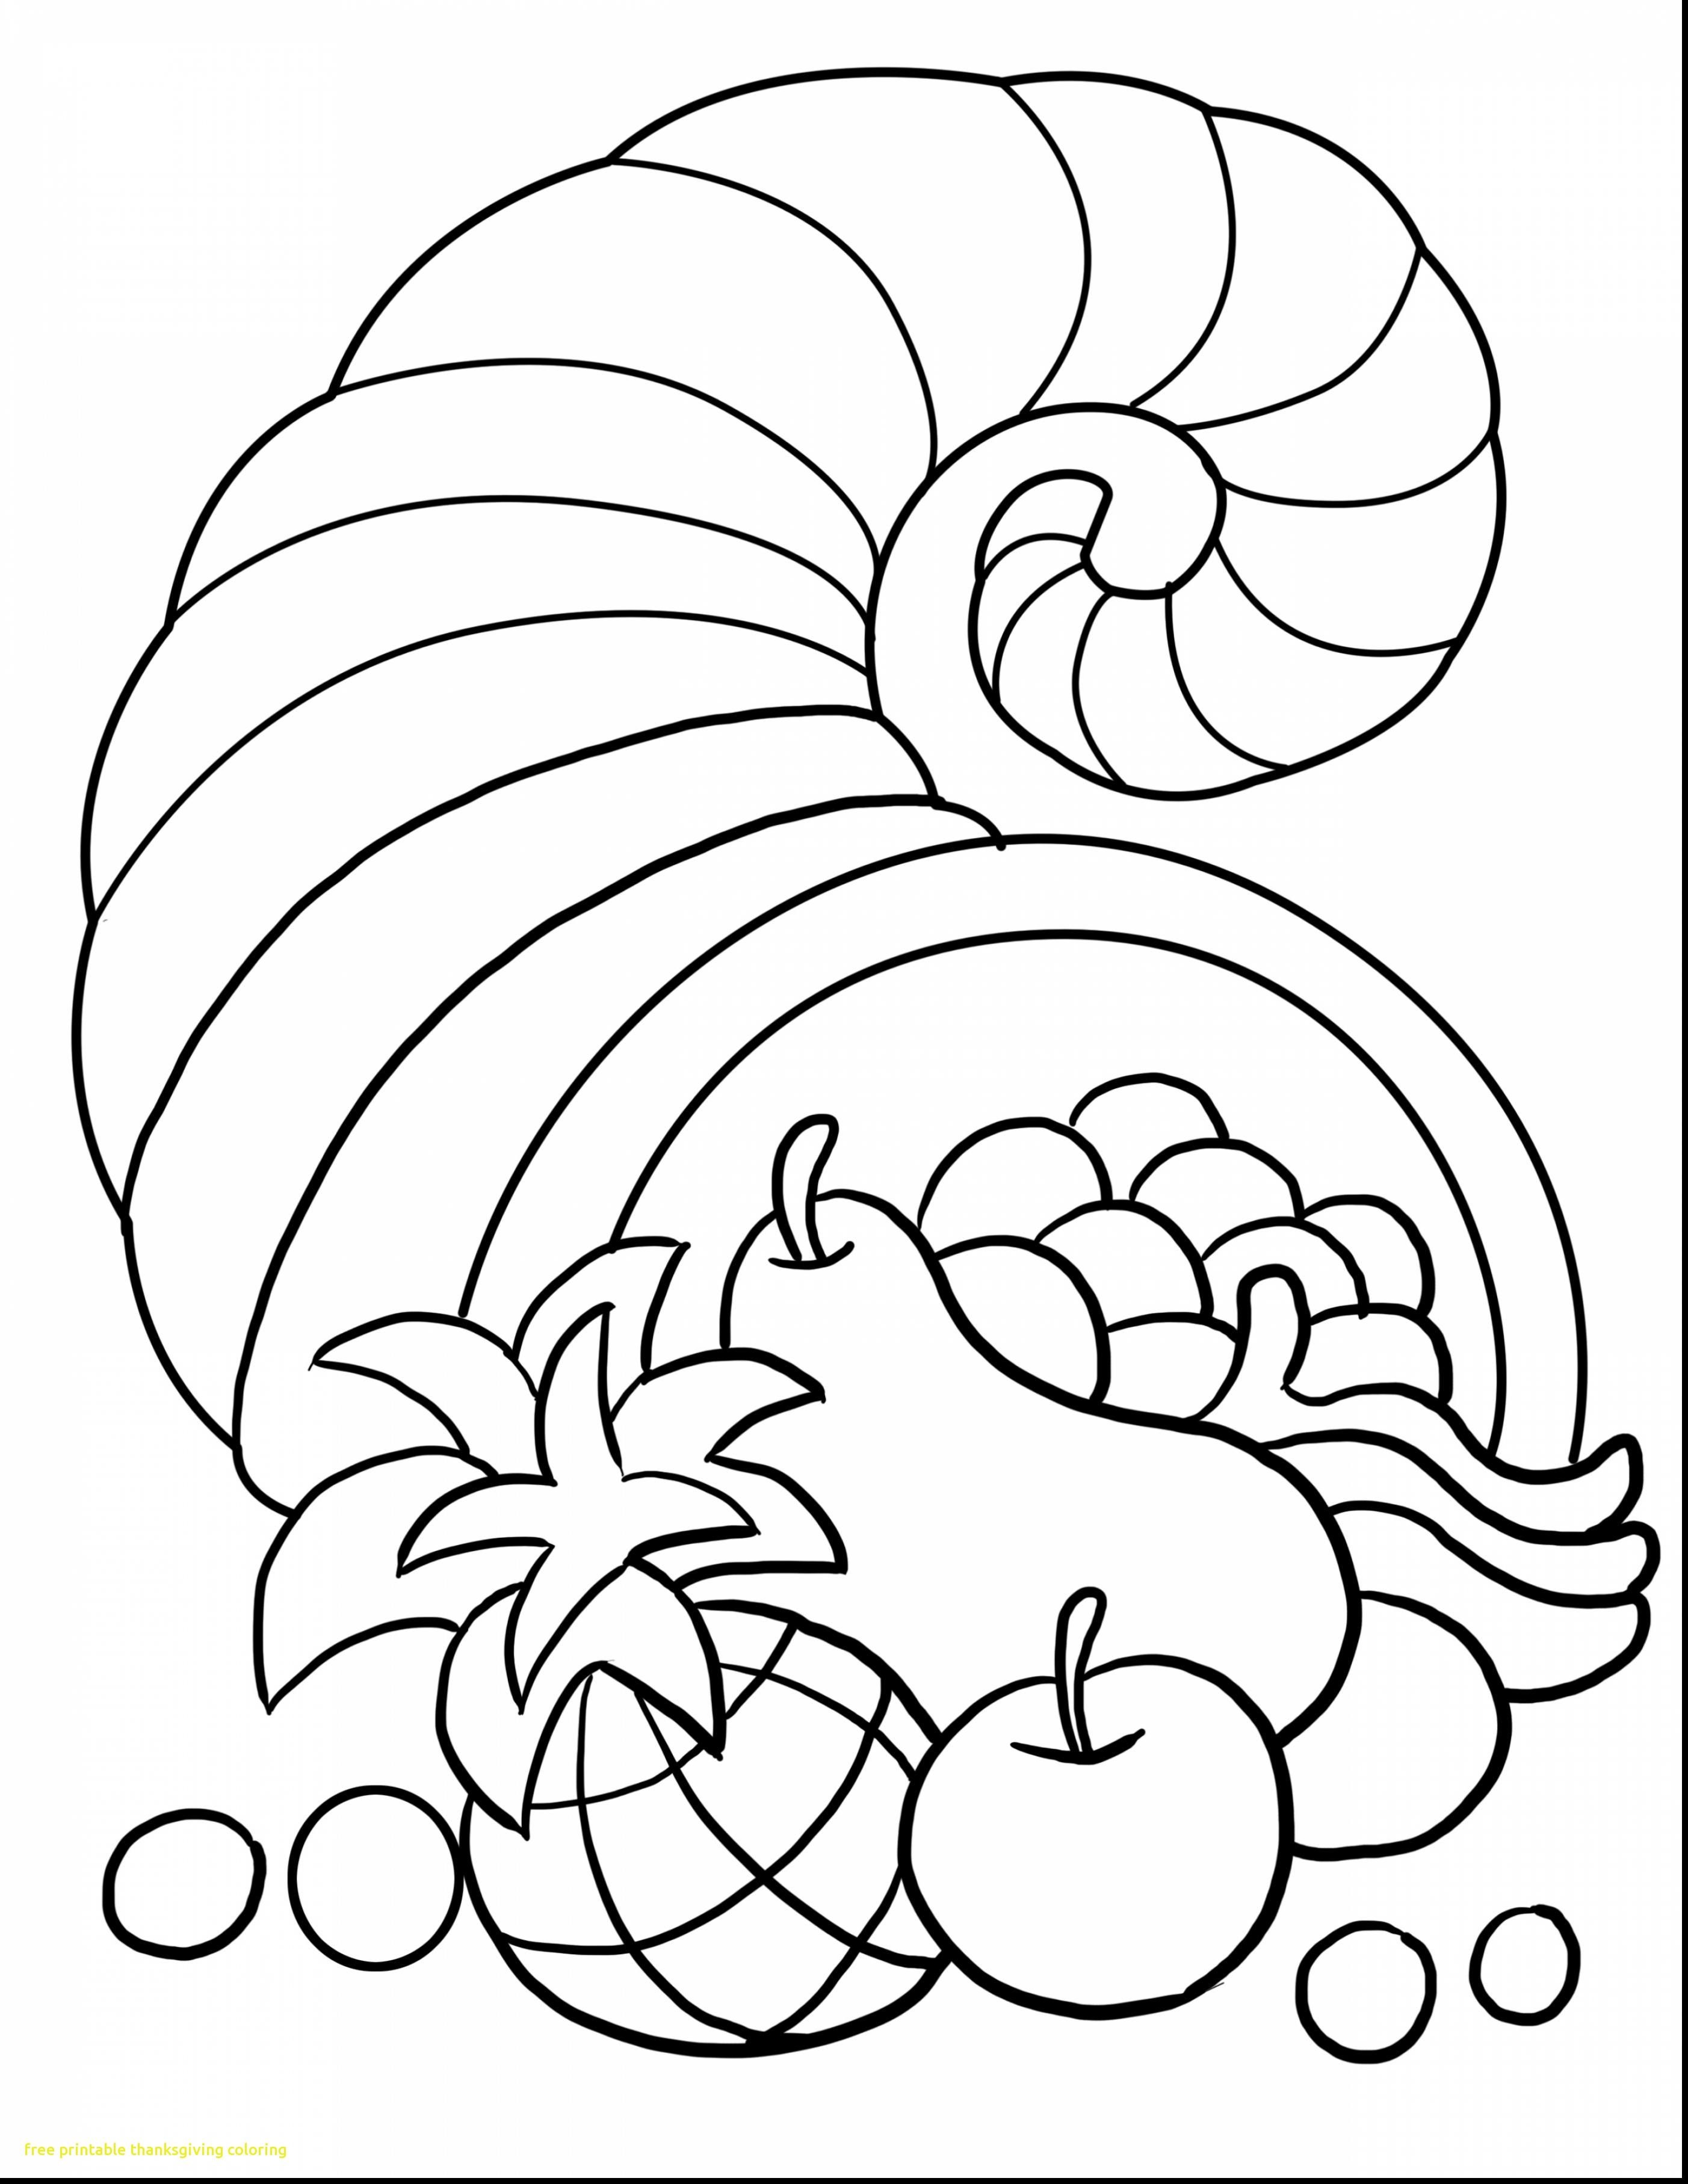 25 Brilliant Photo Of Thanksgiving Printable Coloring Pages Albanysinsanity Com Turkey Coloring Pages Thanksgiving Coloring Sheets Fall Coloring Pages